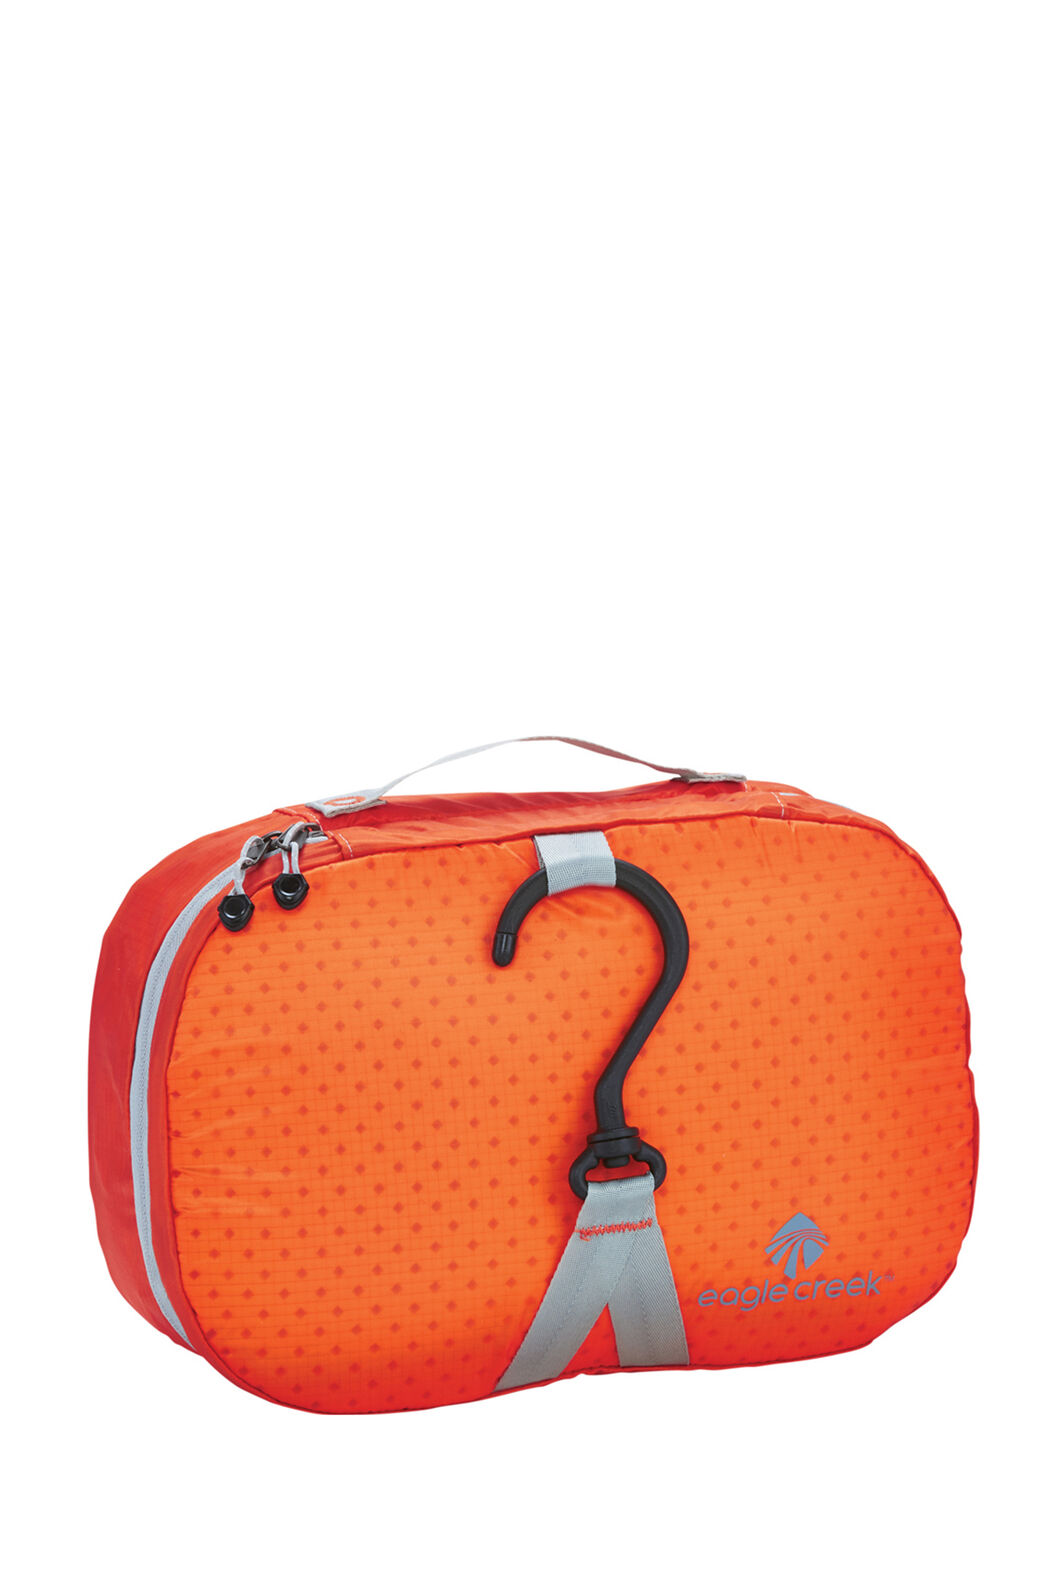 Eagle Creek Pack-It Specter Wallaby Strobe, Flame Orange, hi-res